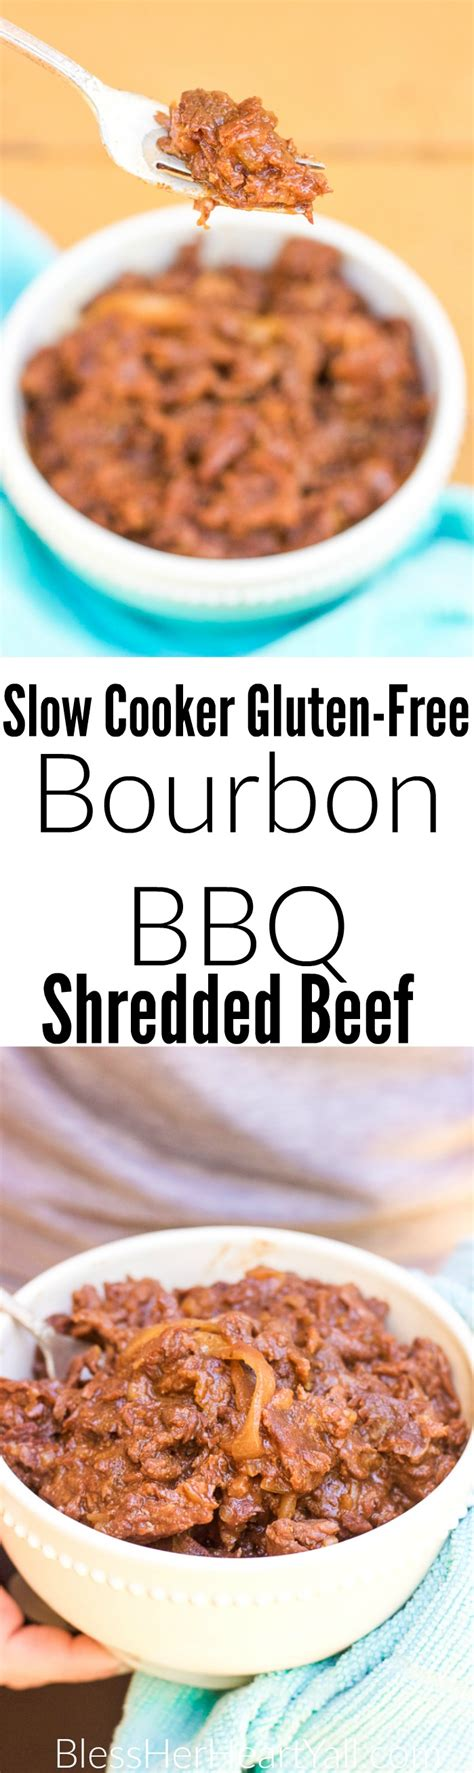 gluten free slow cooker with hamburger gluten free bourbon bbq shredded beef bless y all